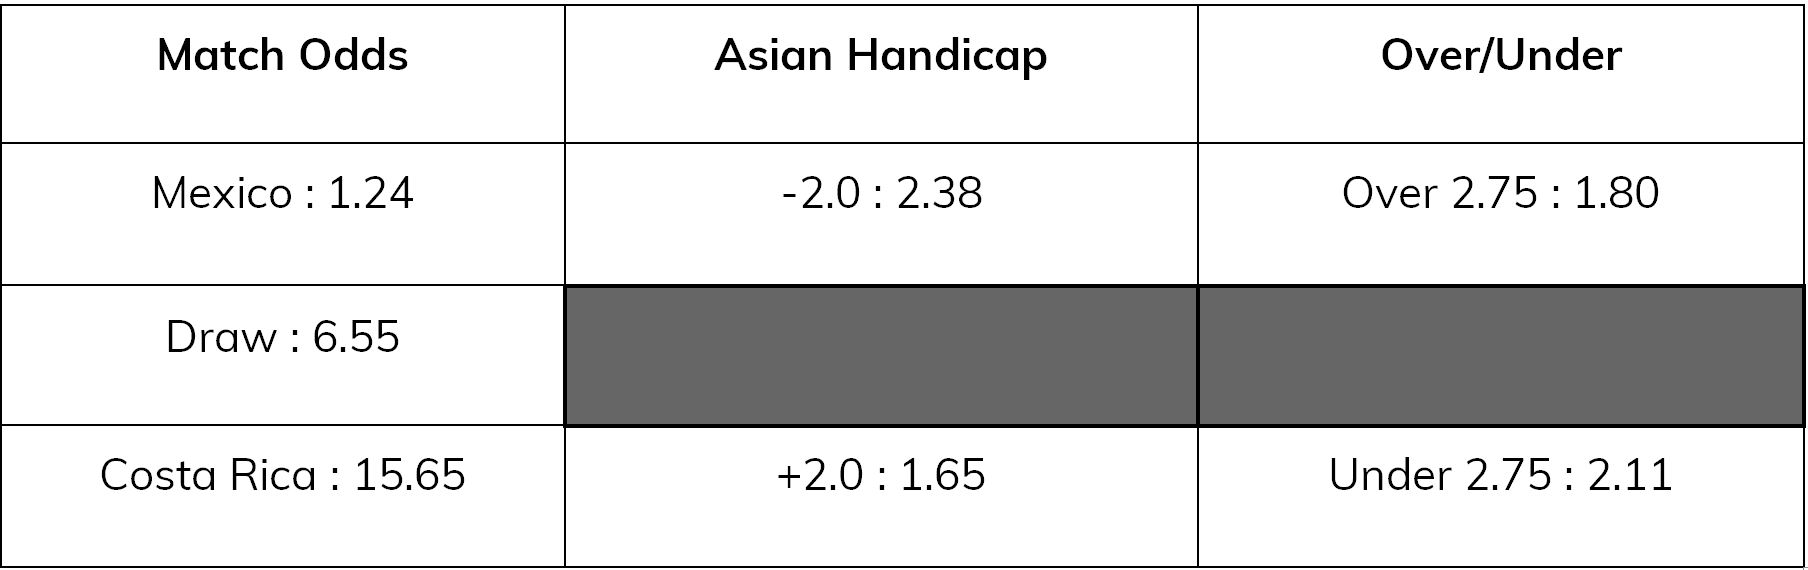 brazil-v-costa-rica-asian-handicap-eastbridge7